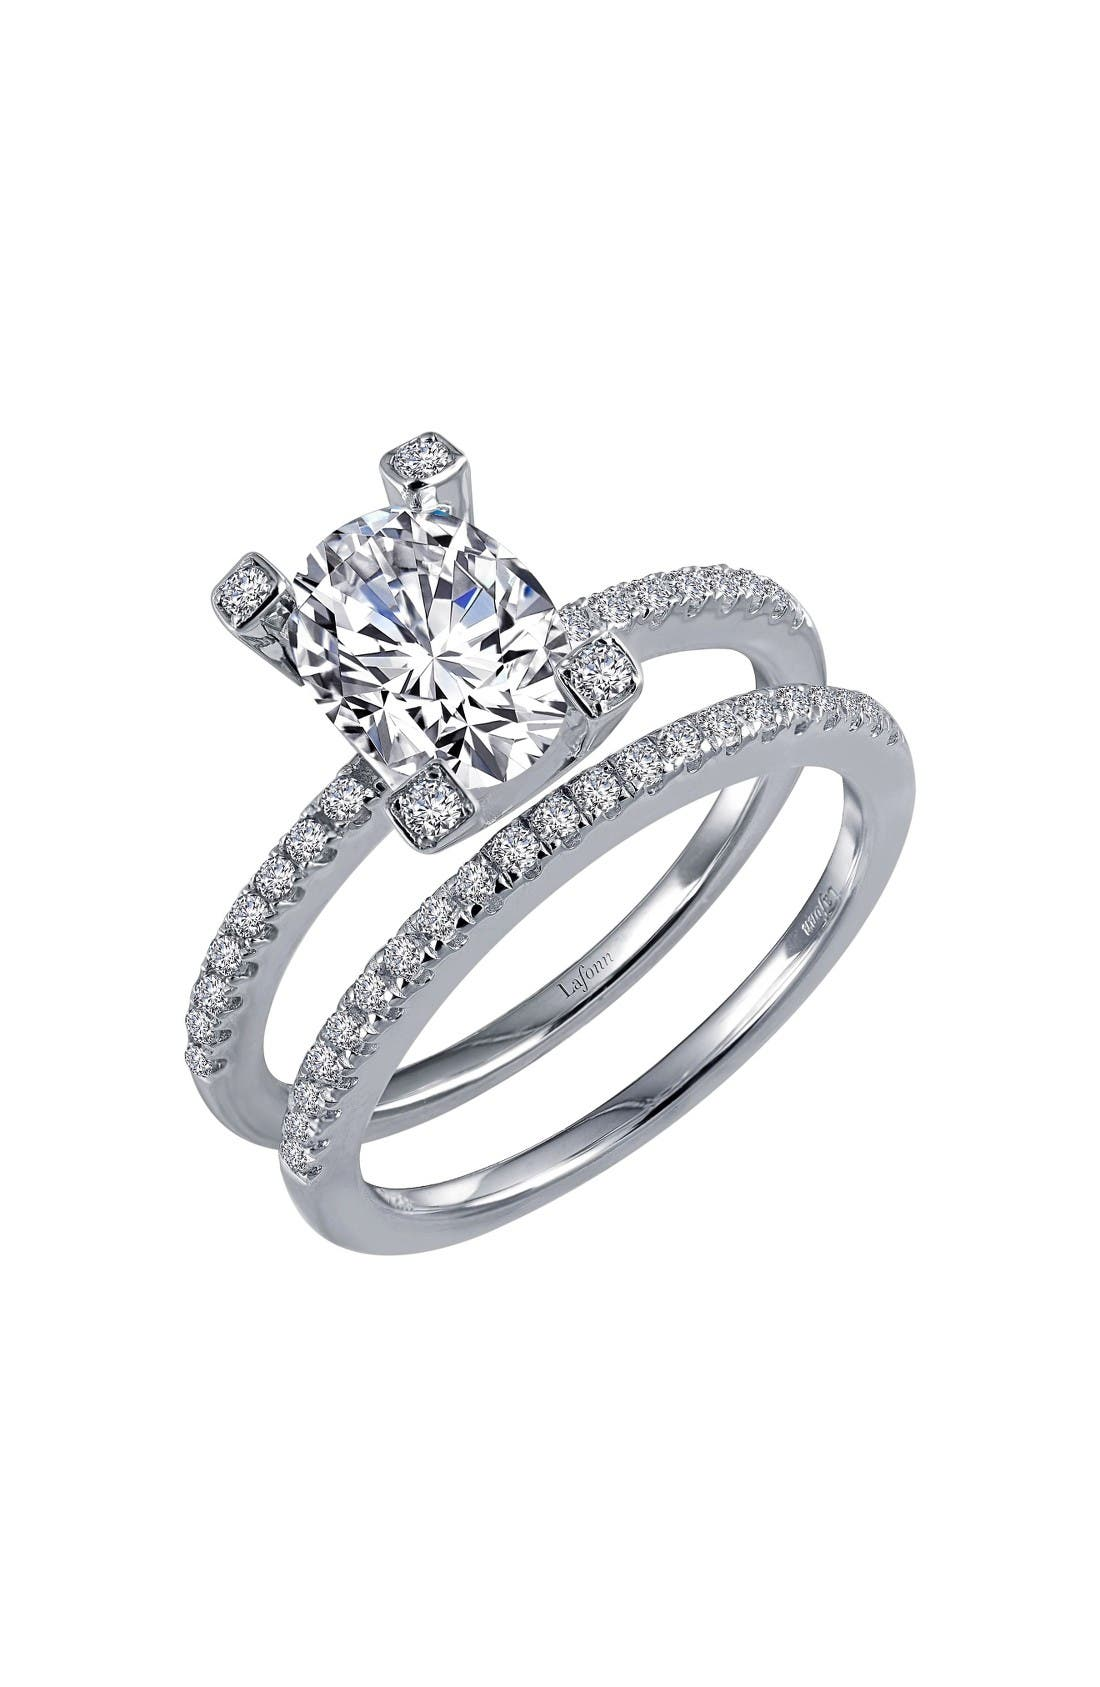 Simulated Diamond Openwork Ring,                         Main,                         color, Silver